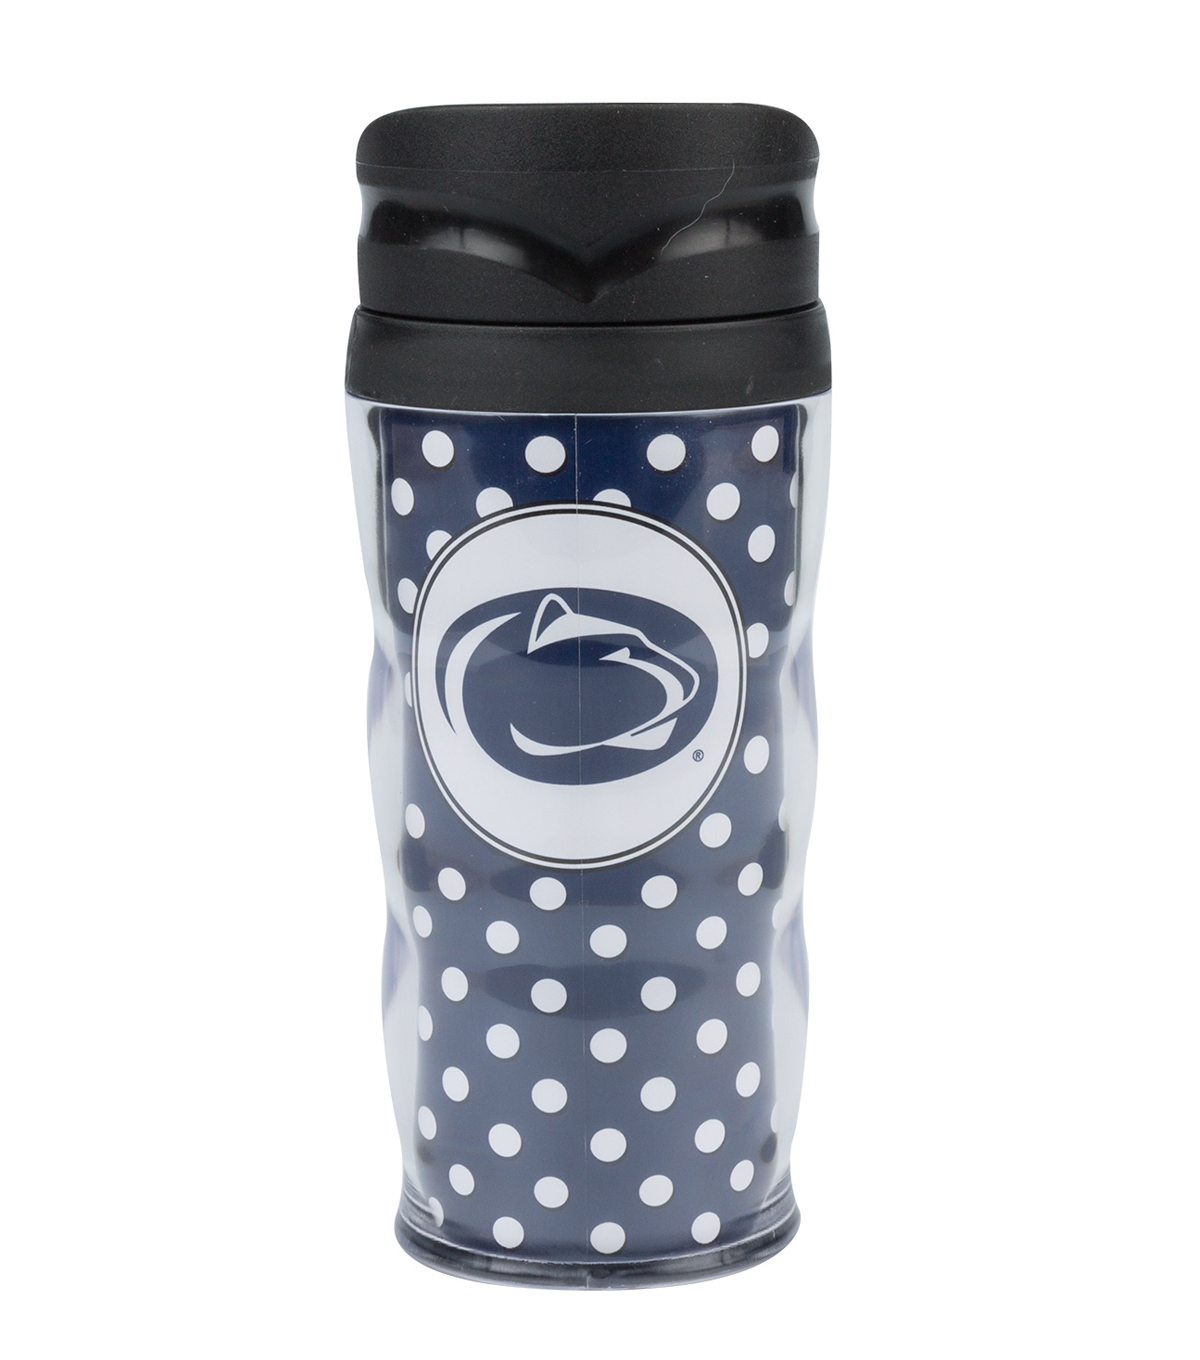 Penn State University Polka Dot Travel Mug